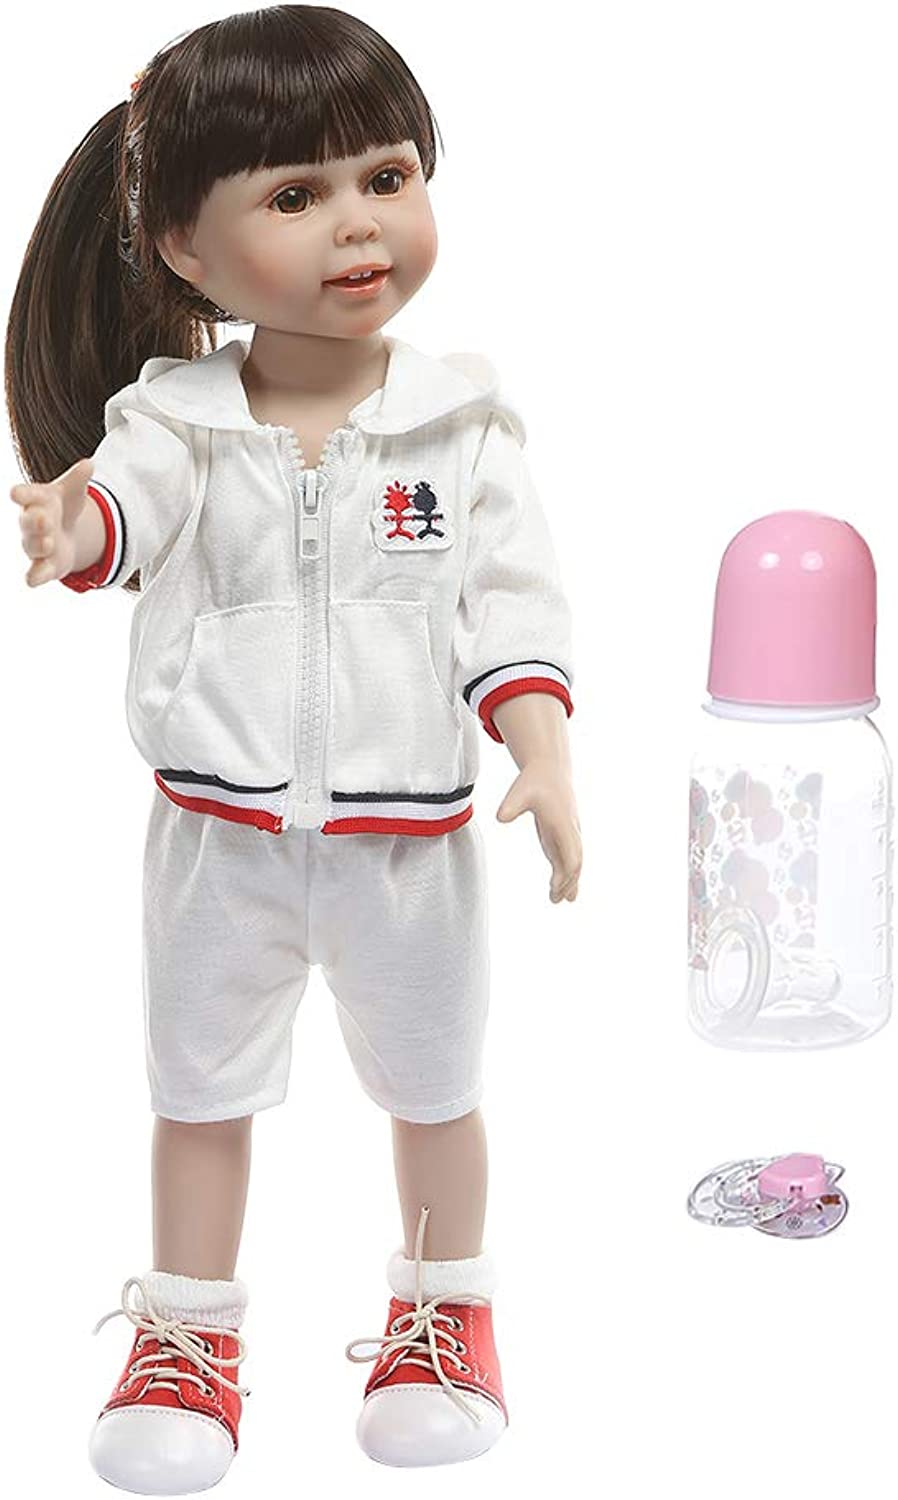 45cm Reborn Doll Realistic Full Silicone Newborn Baby Toy Girl with Pigtails Princess Clothes Pacifier Lifelike Handmade Birthday Gifts